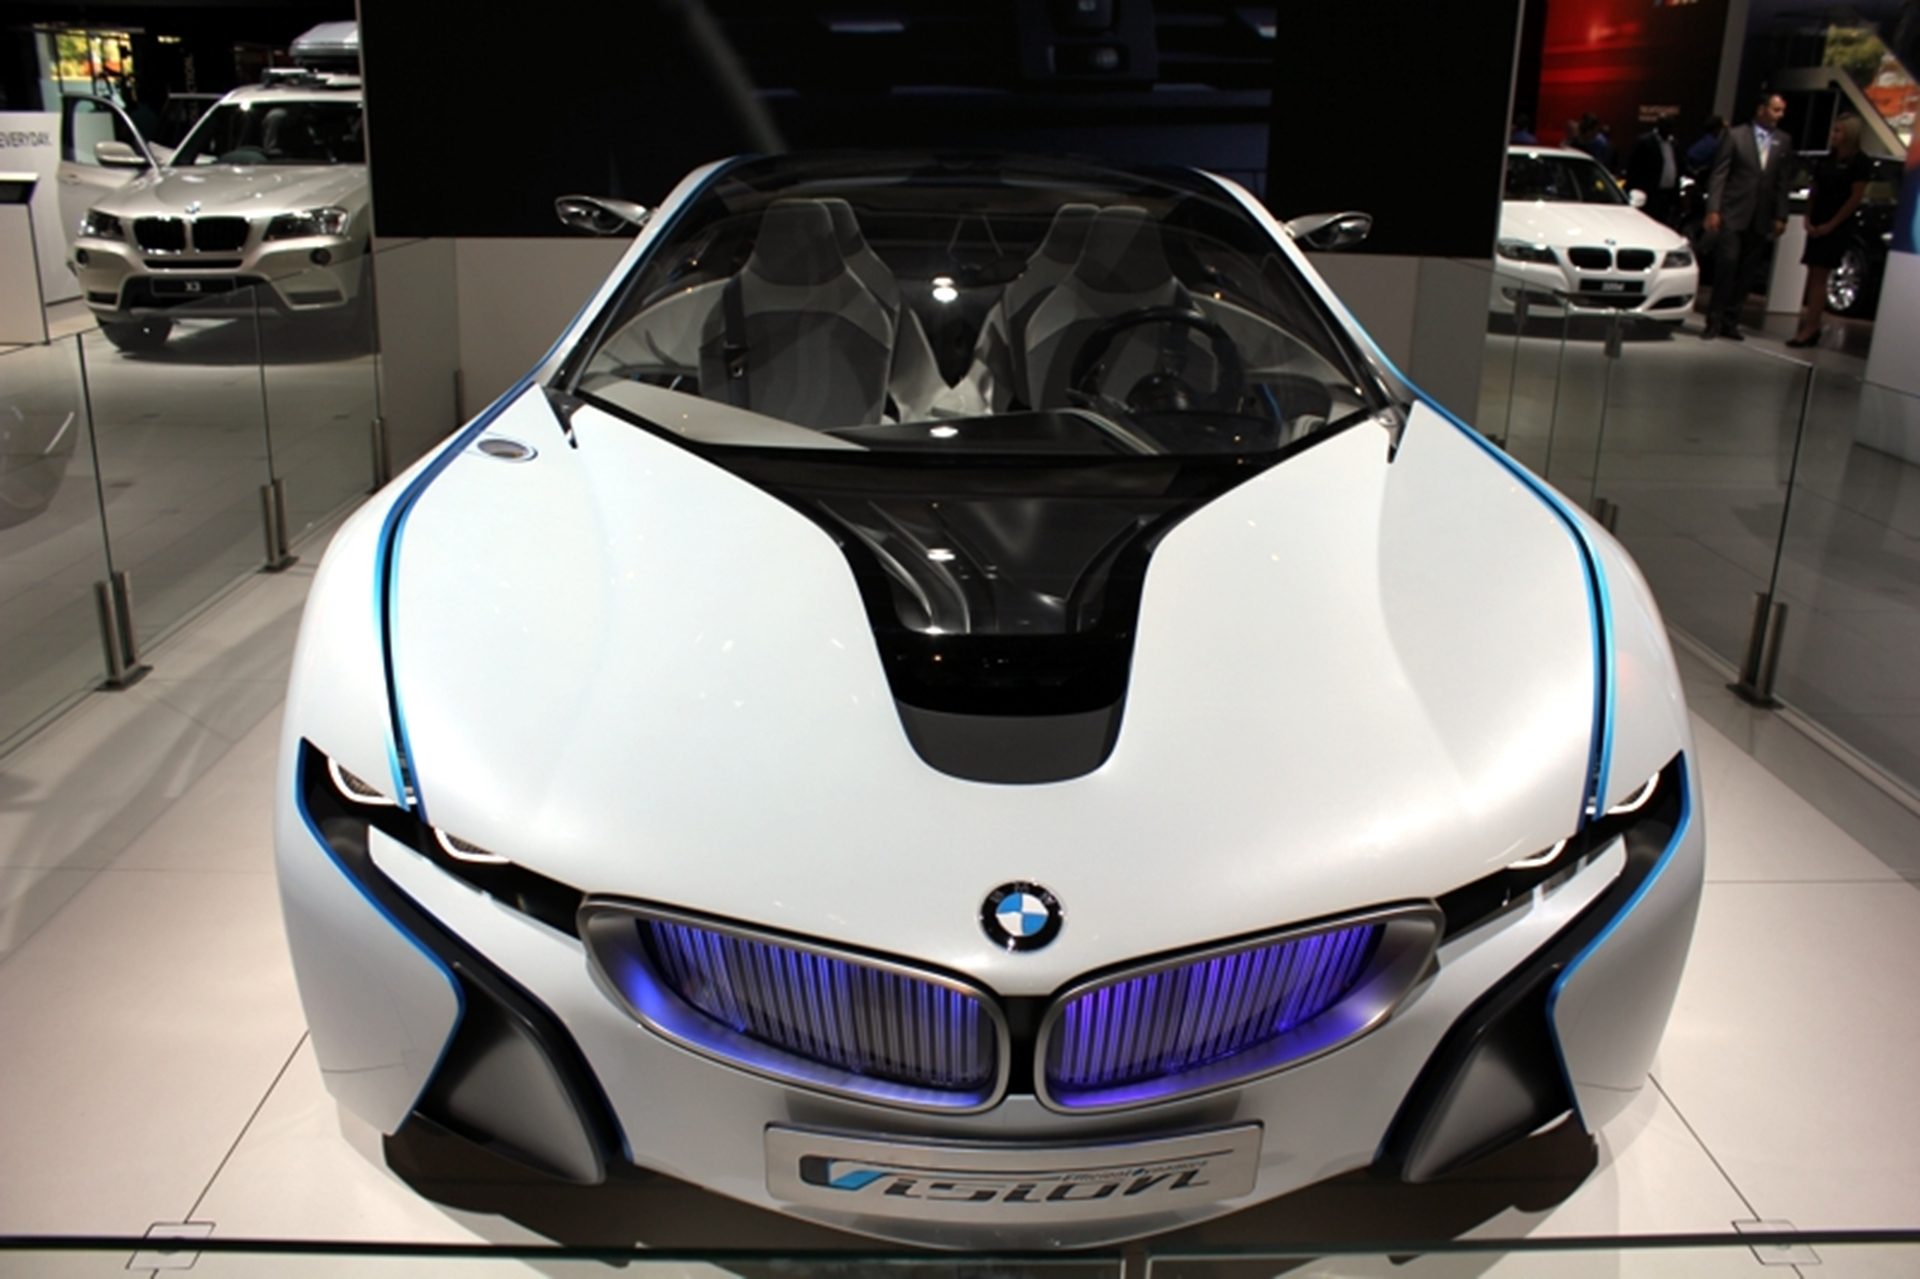 Front View of the BMW I Concept Car